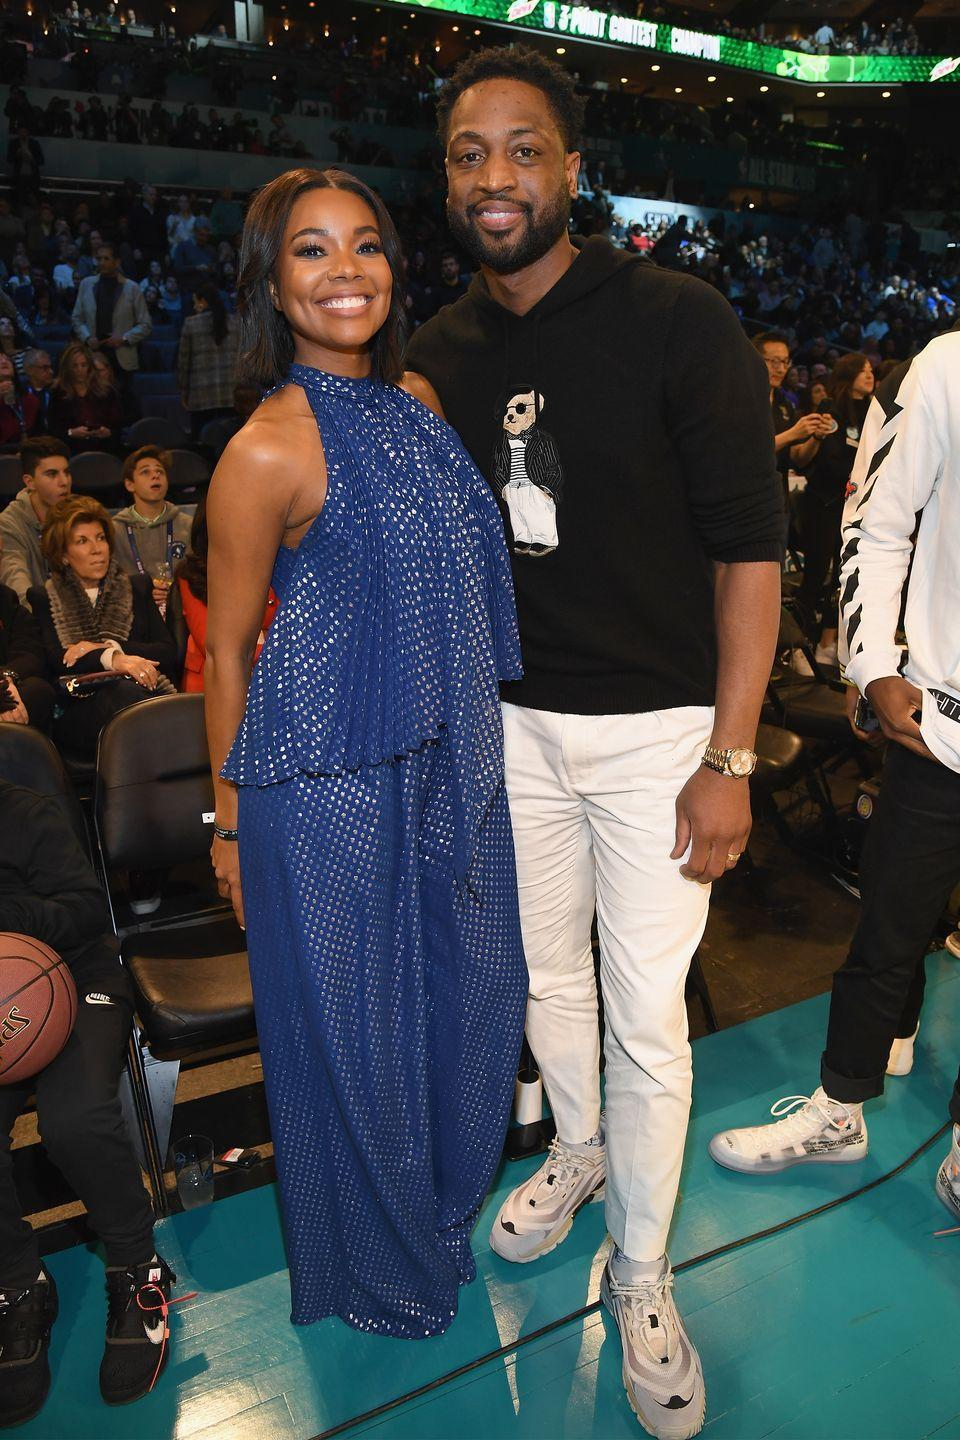 """<p>About three years after her divorce was finalized, <a href=""""https://www.prevention.com/life/a28776822/gabrielle-union-dwayne-wade-relationship-marriage/"""" rel=""""nofollow noopener"""" target=""""_blank"""" data-ylk=""""slk:Union met Wade"""" class=""""link rapid-noclick-resp"""">Union met Wade</a>, an NBA player. The two got married in Miami, Florida in August 2014 and recently had a daughter together.</p>"""